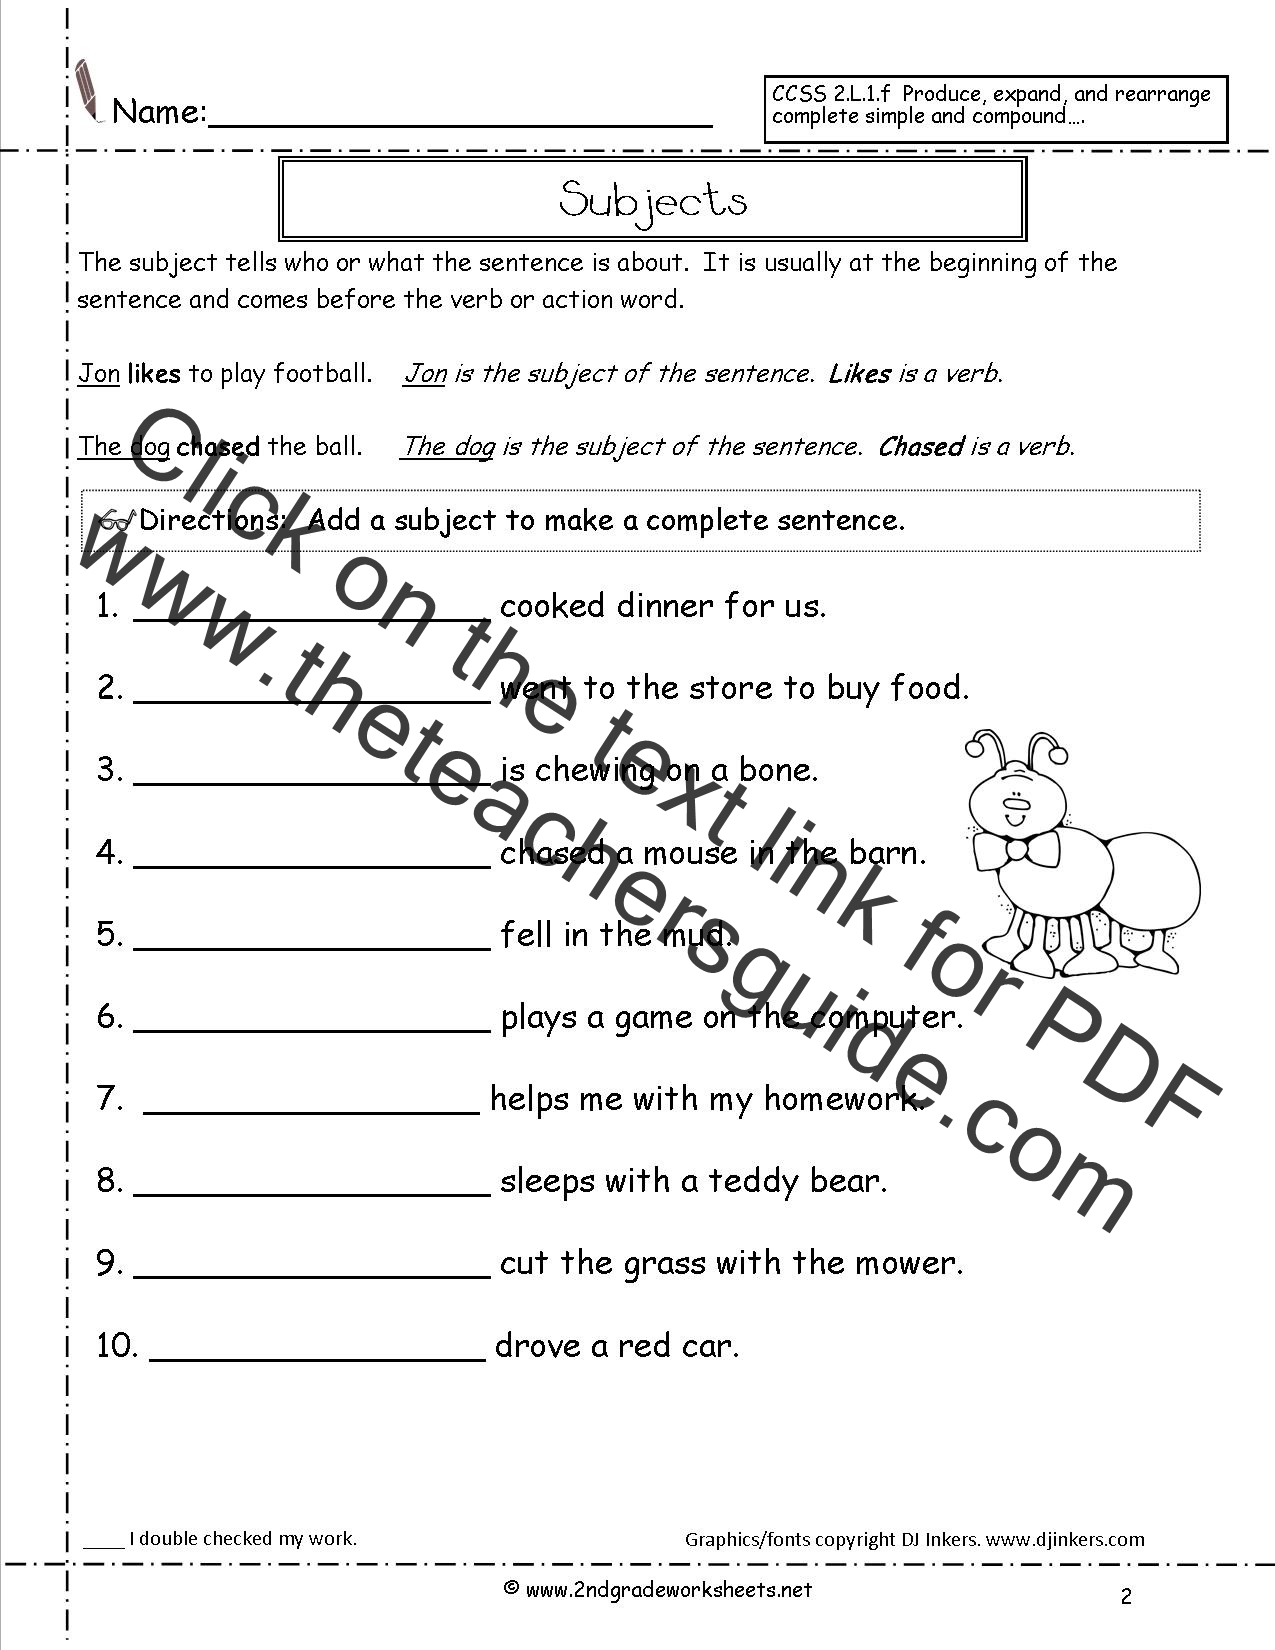 Printables Writing Complete Sentences Worksheet sentences worksheets from the teachers guide subjects worksheet sentence subjects